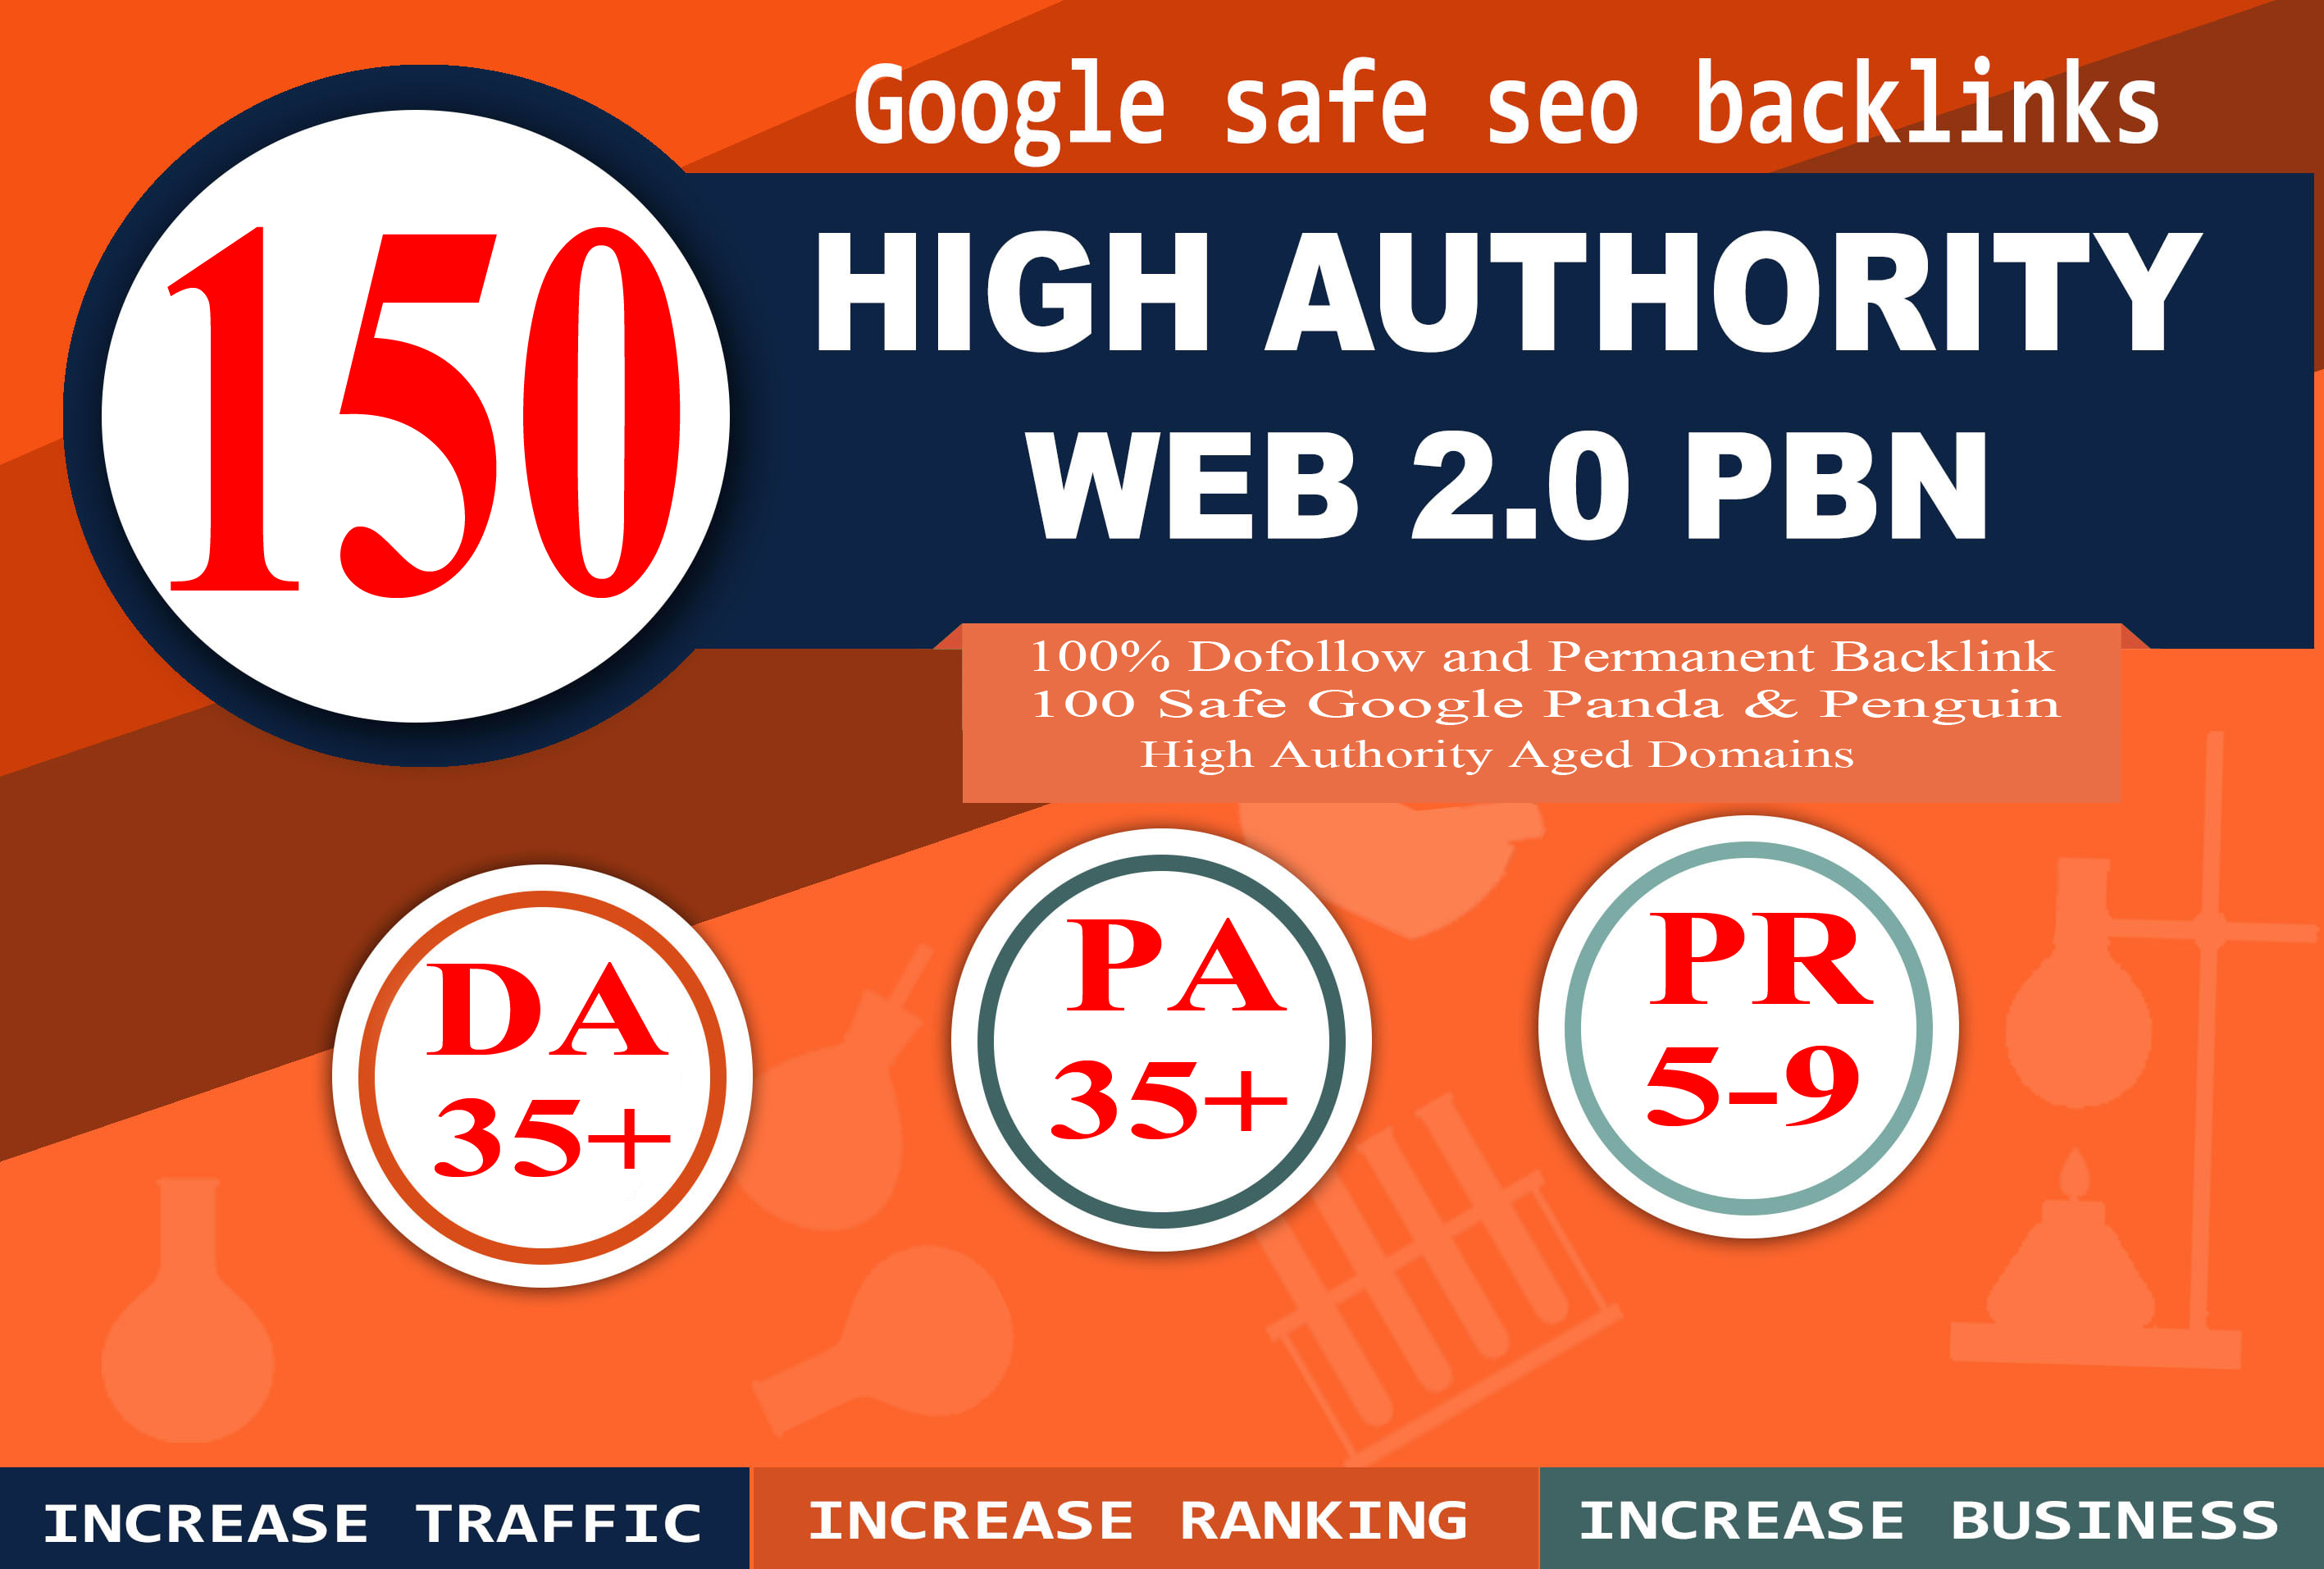 I Will Do Provide DA 35+ PA 35+ web2.0 150 pbn in unique 150 site